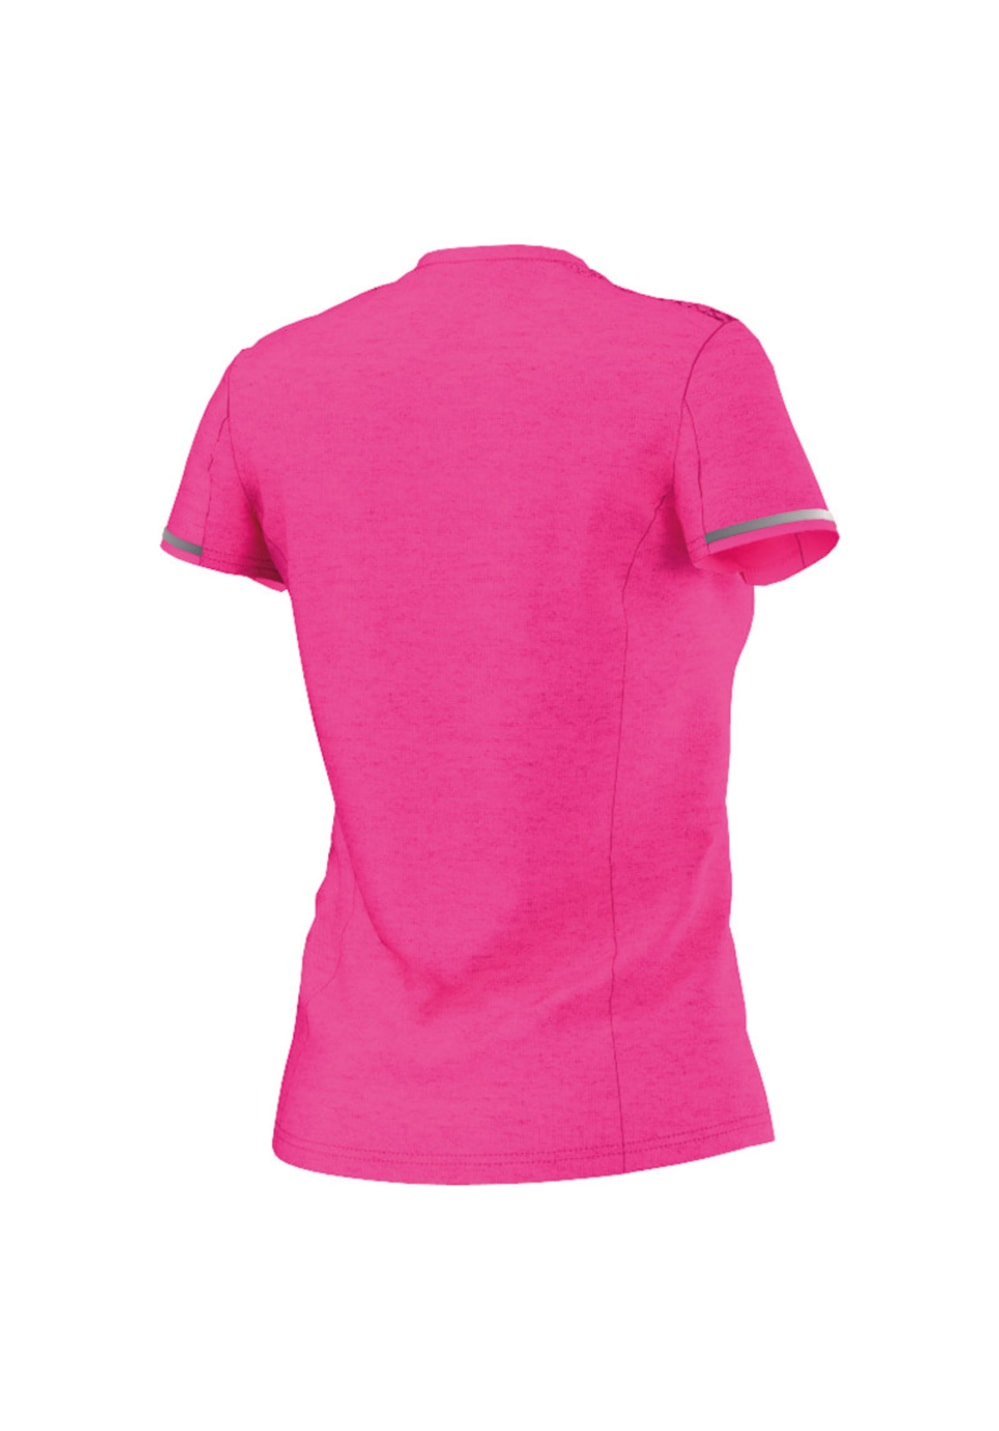 fafdf0f713356 ... adidas Supernova Climachill Short Sleeve - Running tops for Women - Pink.  Back to Overview. 1  2. Previous